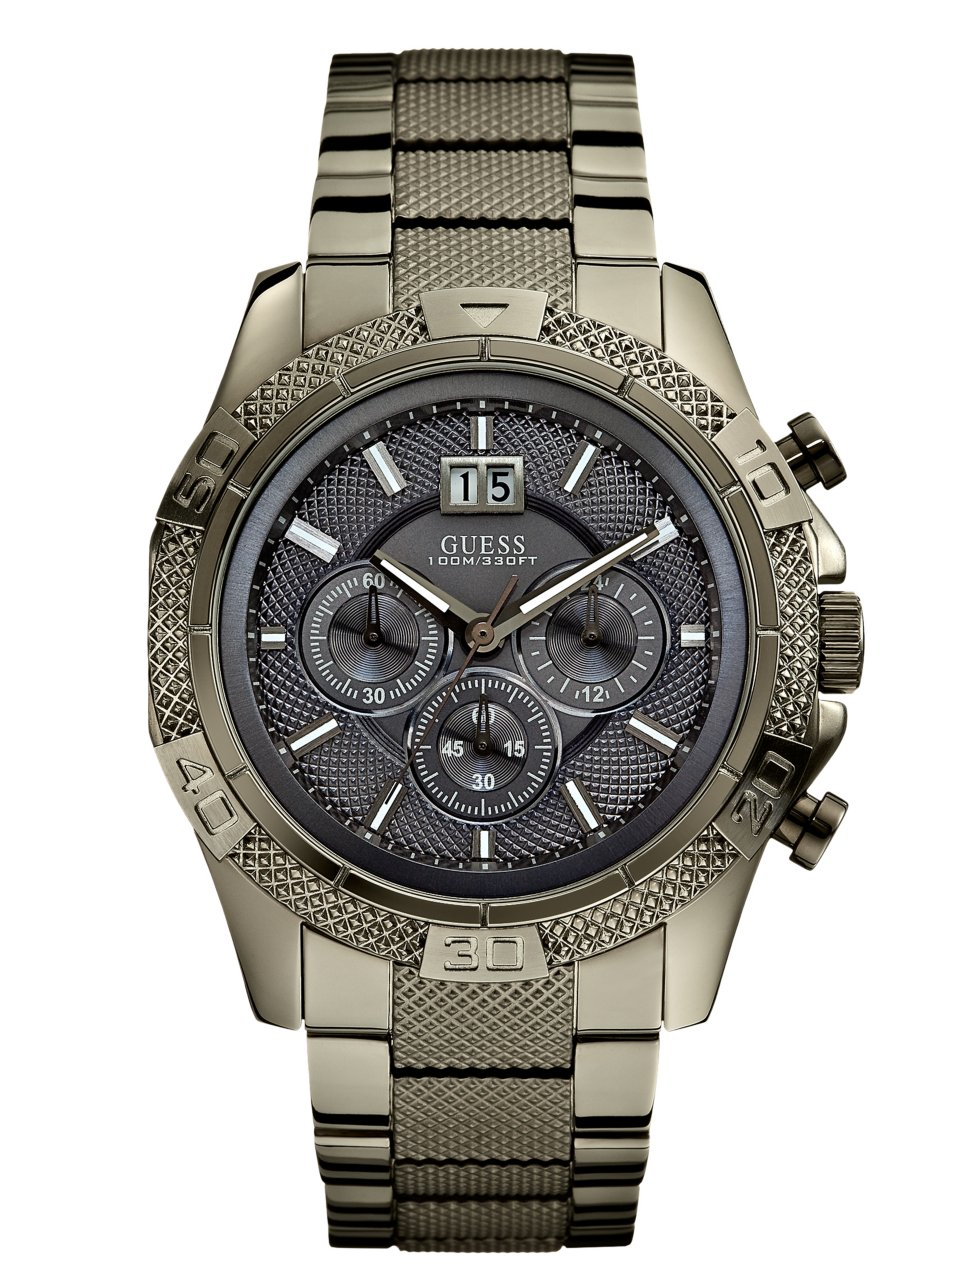 GUESS Boldly Detailed Sport Chronograph Watch